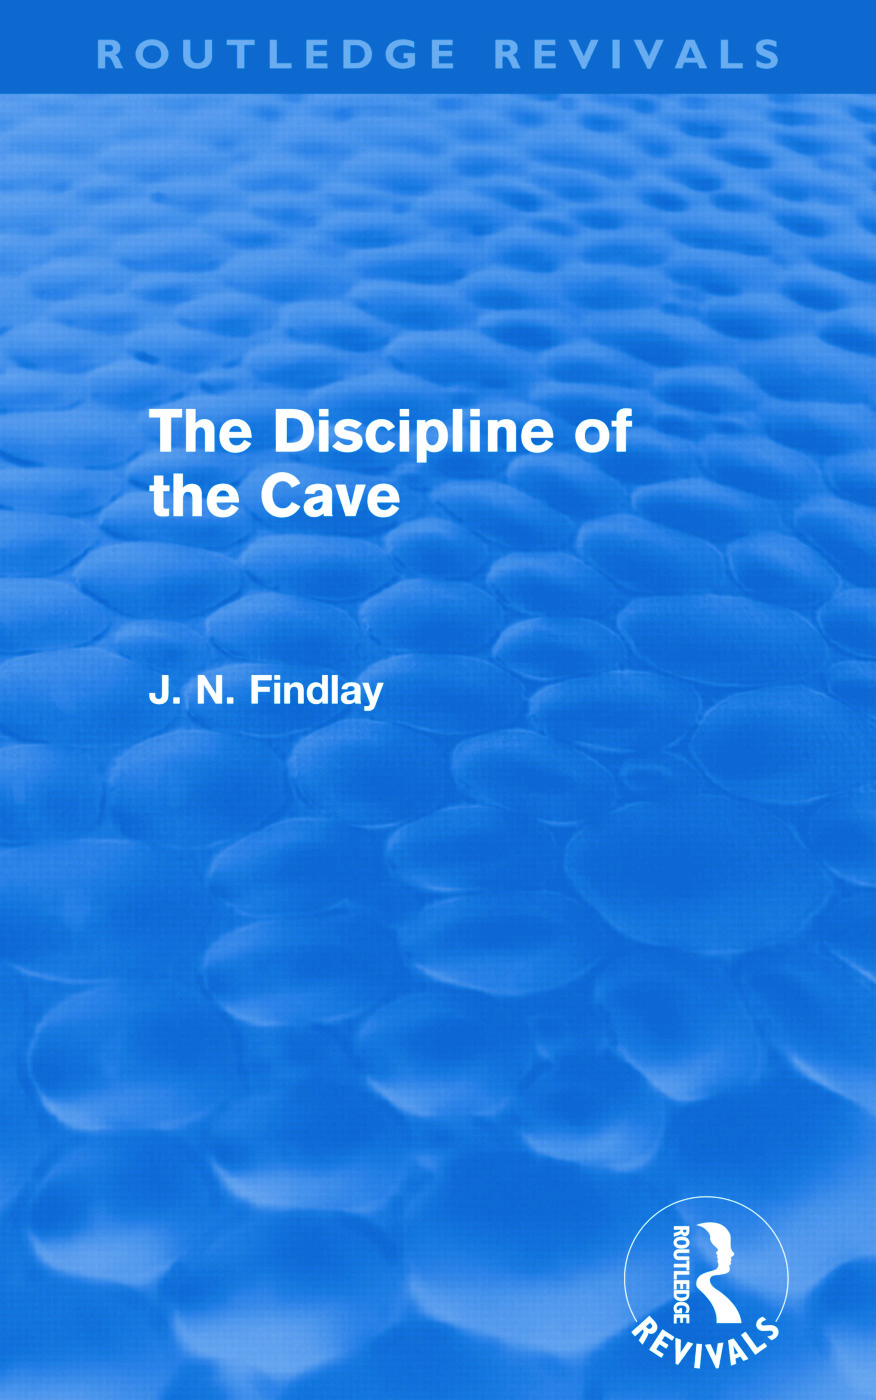 The Discipline of the Cave (Routledge Revivals)